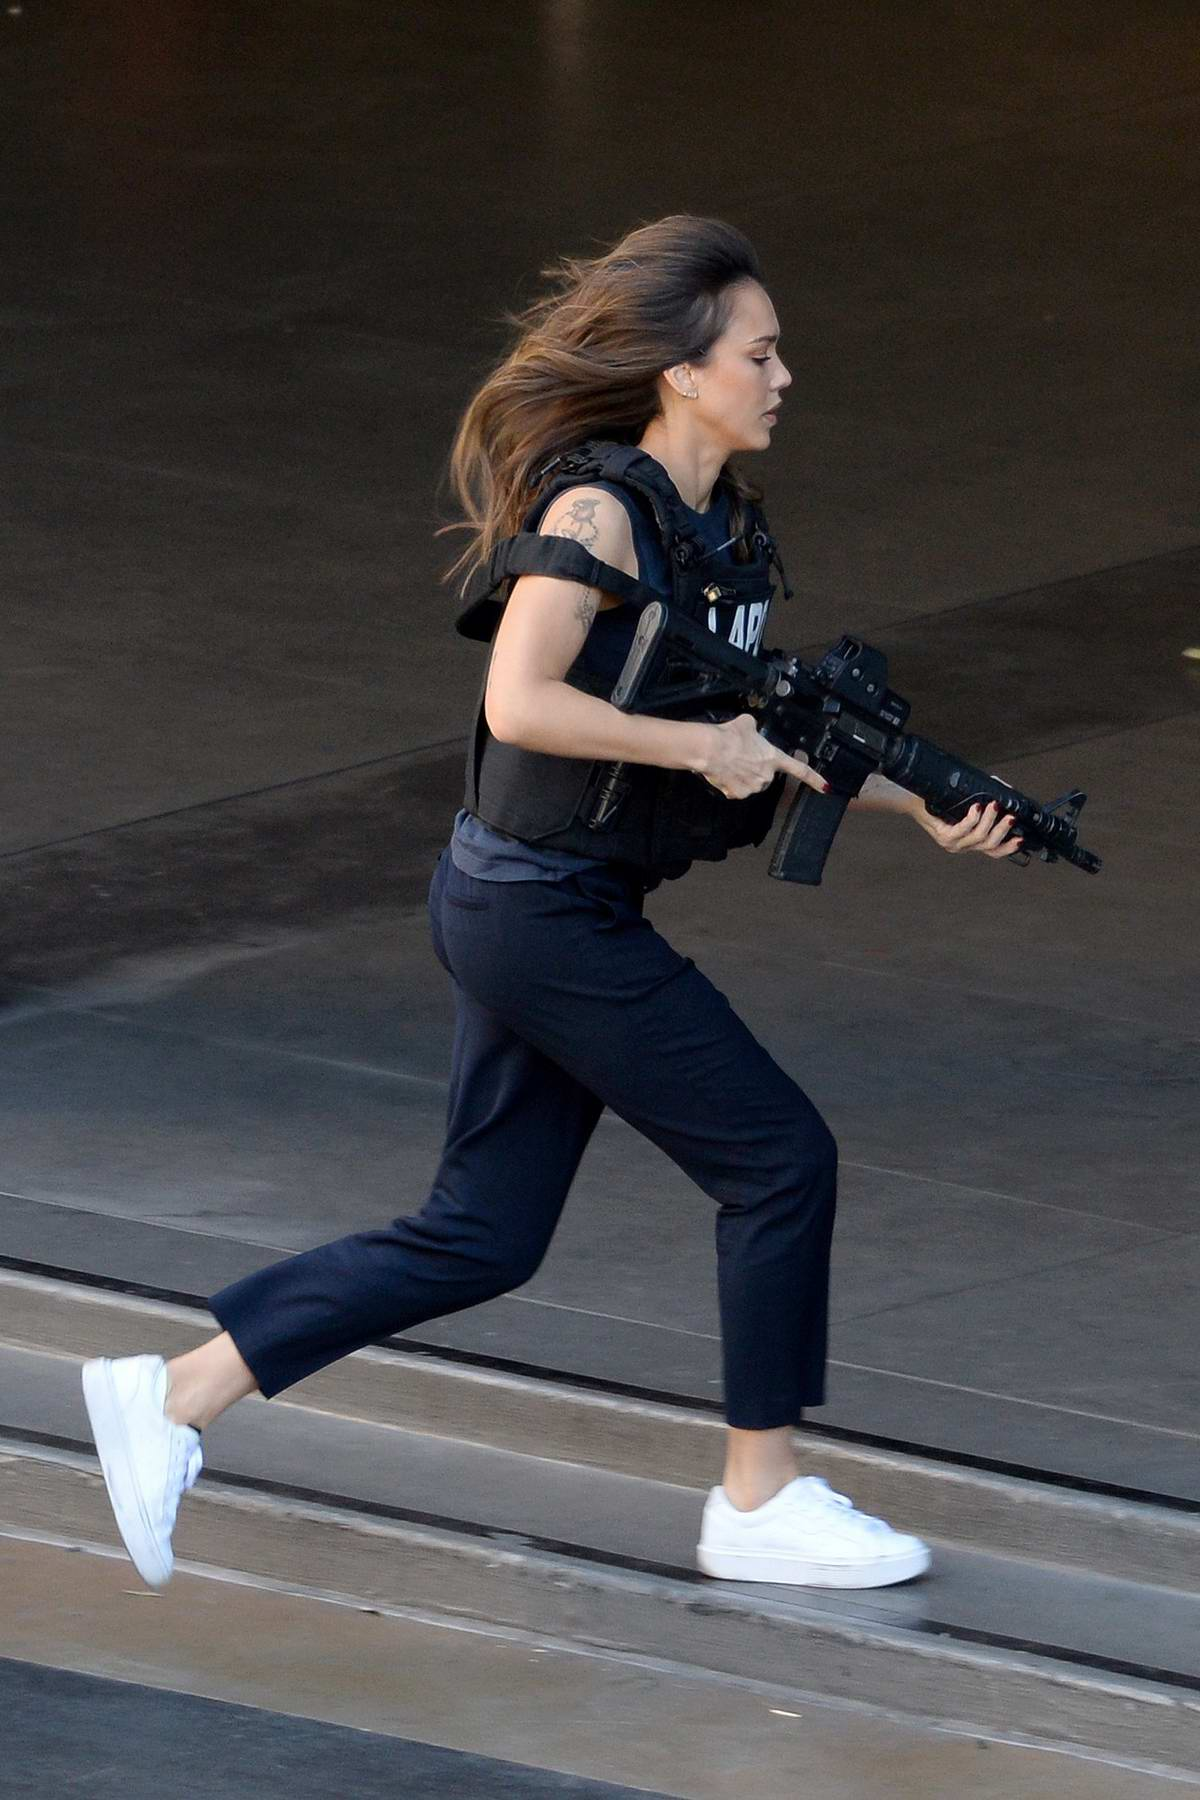 Jessica Alba spotted while filming some action scenes on the set of 'LA's Finest' in Los Angeles